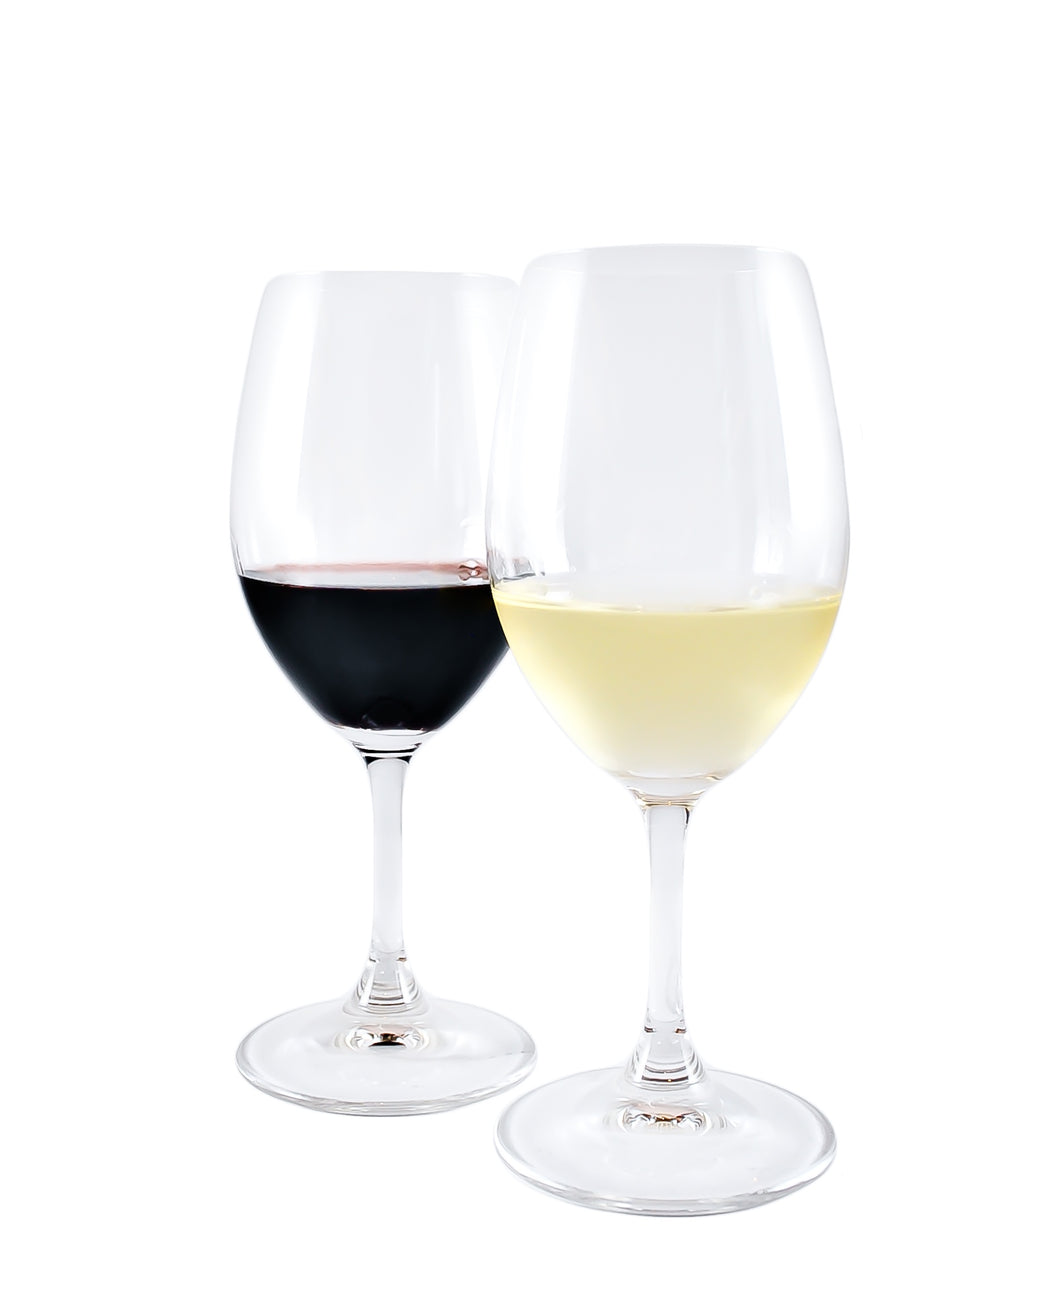 Riedel Wine Glass 10 oz - Rental